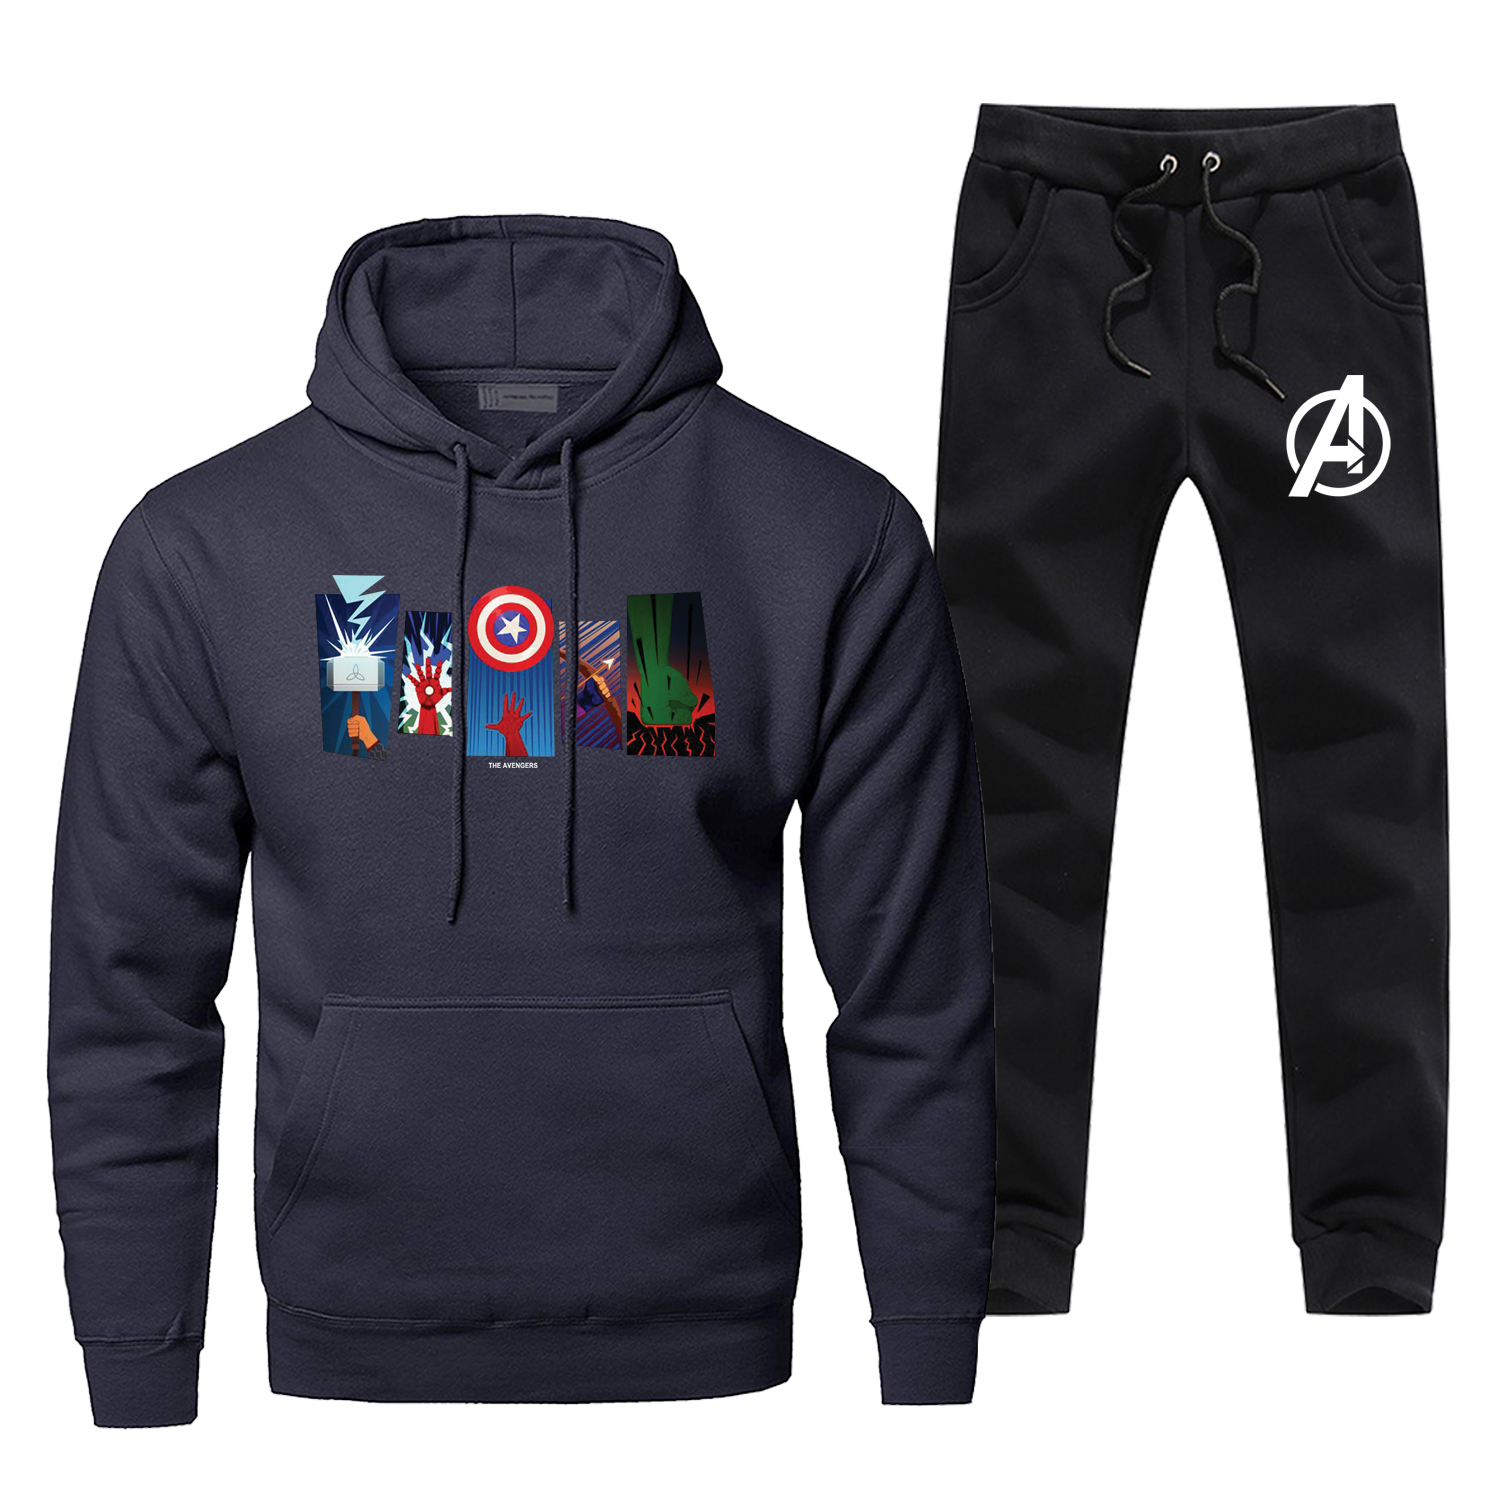 Anengers Thor Iron Man Hoodie Pants Set Men Sweatshirt Male Hoodies Sweatshirts Mens Sets Two Piece Pant Pullover Superhero Coat